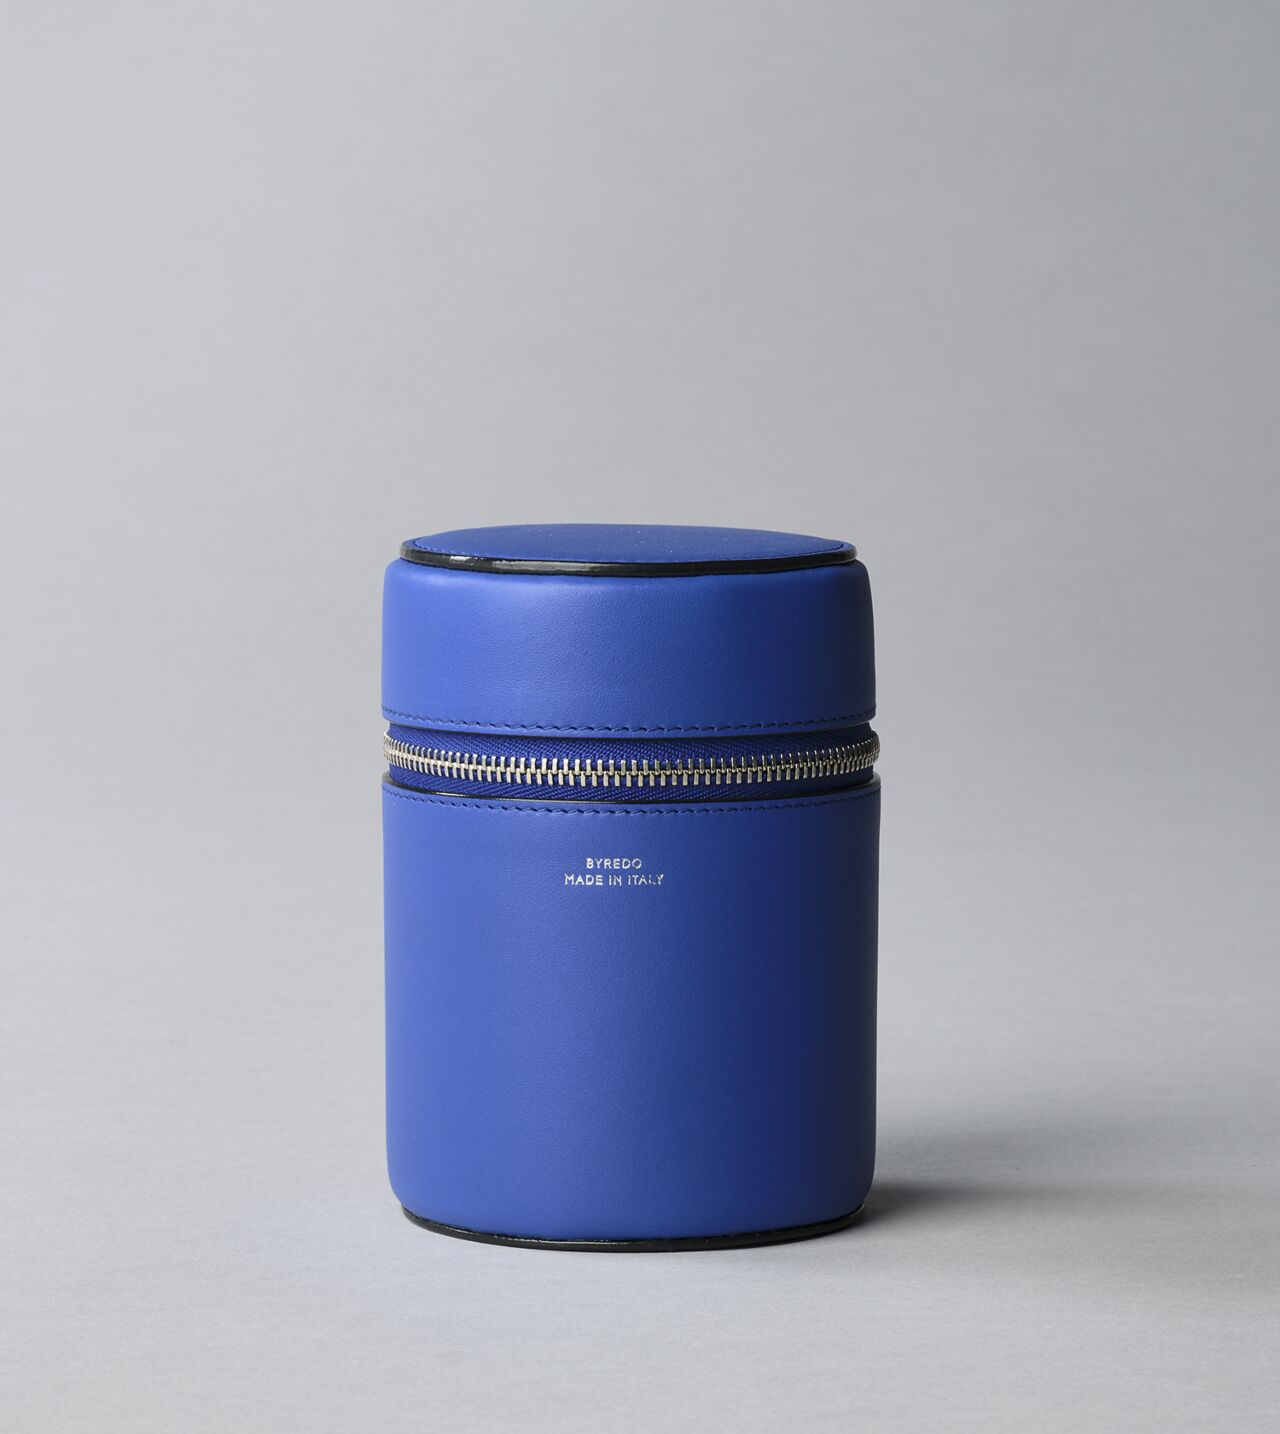 Picture of Byredo Candle holder 240g in Blue leather